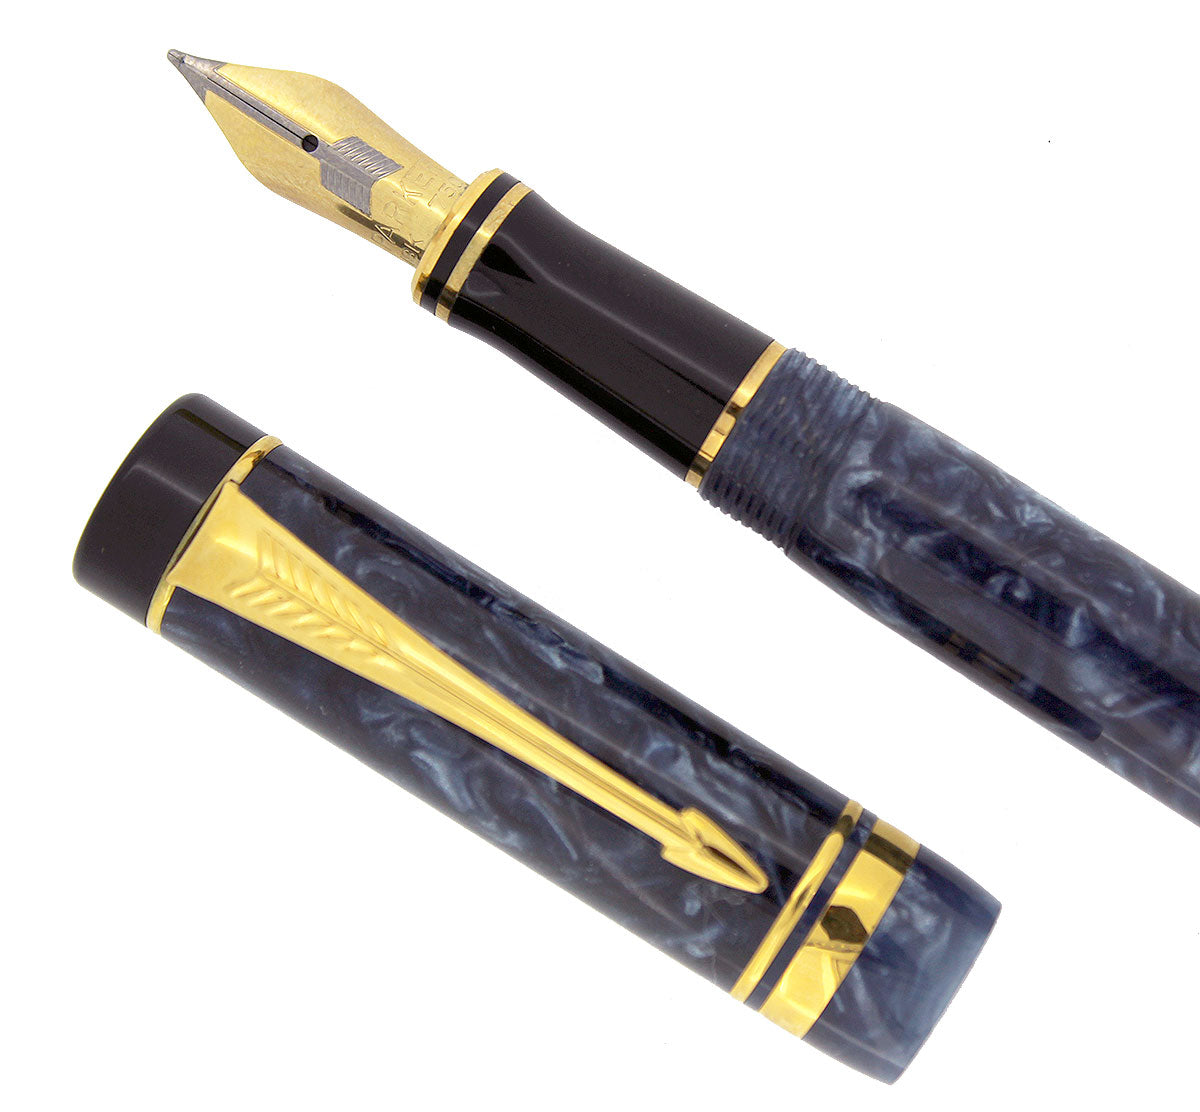 1990 DUOFOLD INTERNATIONAL BLUE MARBLE FOUNTAIN PEN 18K MEDIUM NIB MINT OFFERED BY ANTIQUE DIGGER